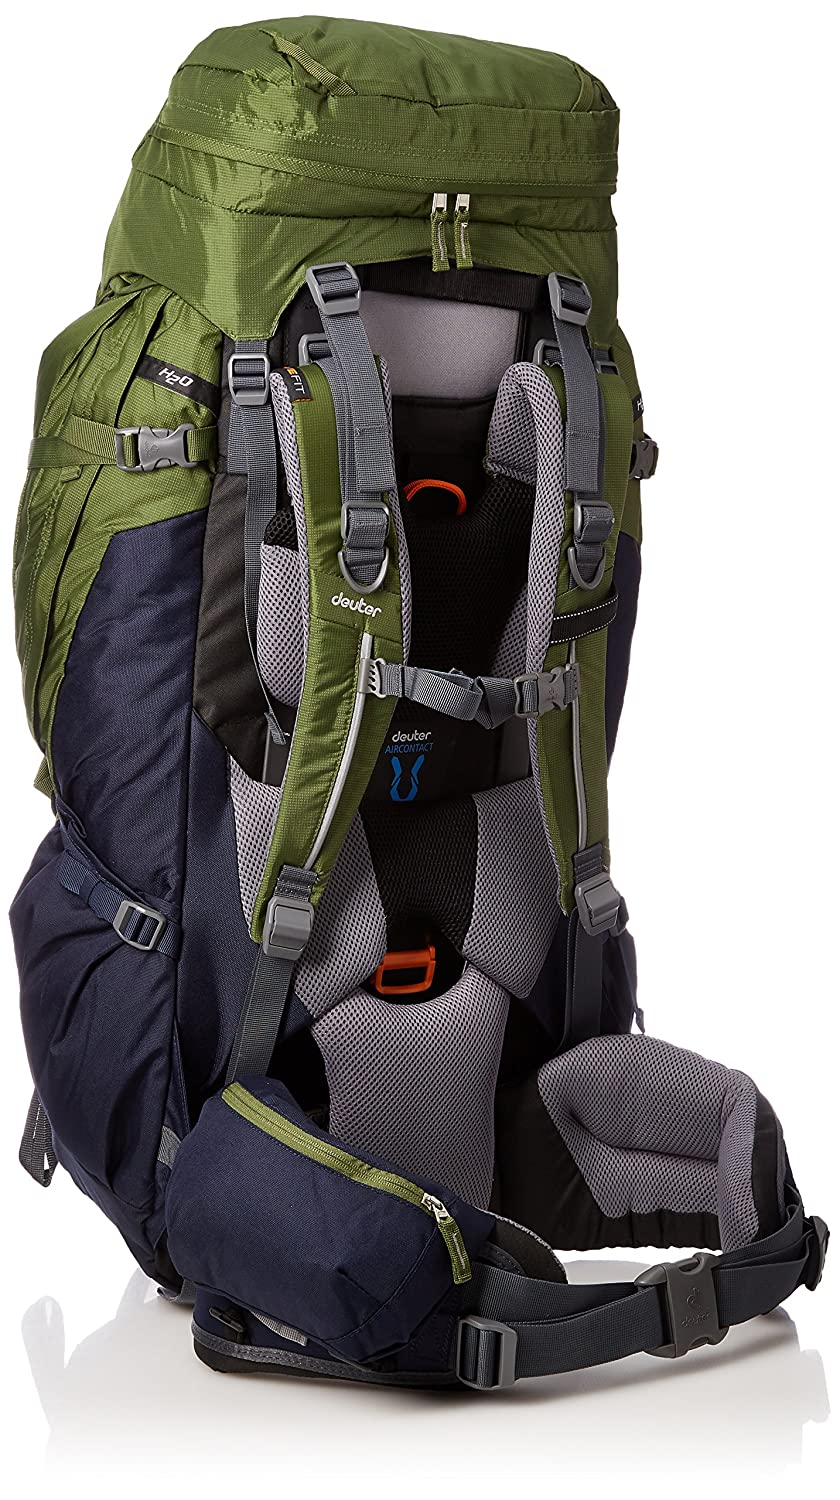 Amazon.com : Deuter AirContact Pro 70 + 15 - Trekking Backpack with Daypack, Pine / Navy : Sports & Outdoors